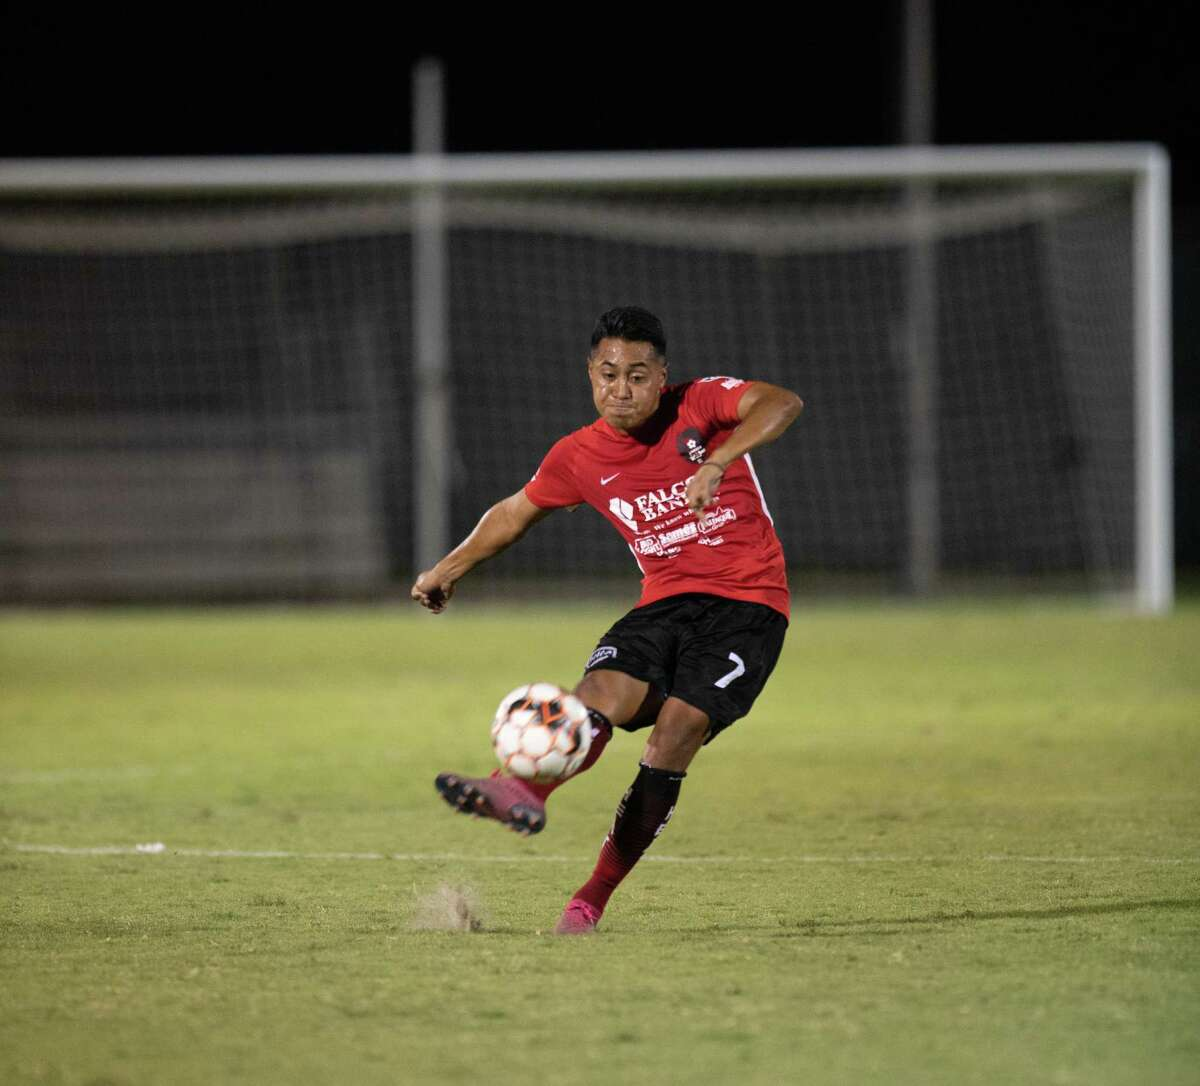 Laredo Heat SC captain Erwin Regules will make his first start of the season Thursday as the Heat host the Denton Diablos FC at 8 p.m. at the TAMIU Soccer Complex.